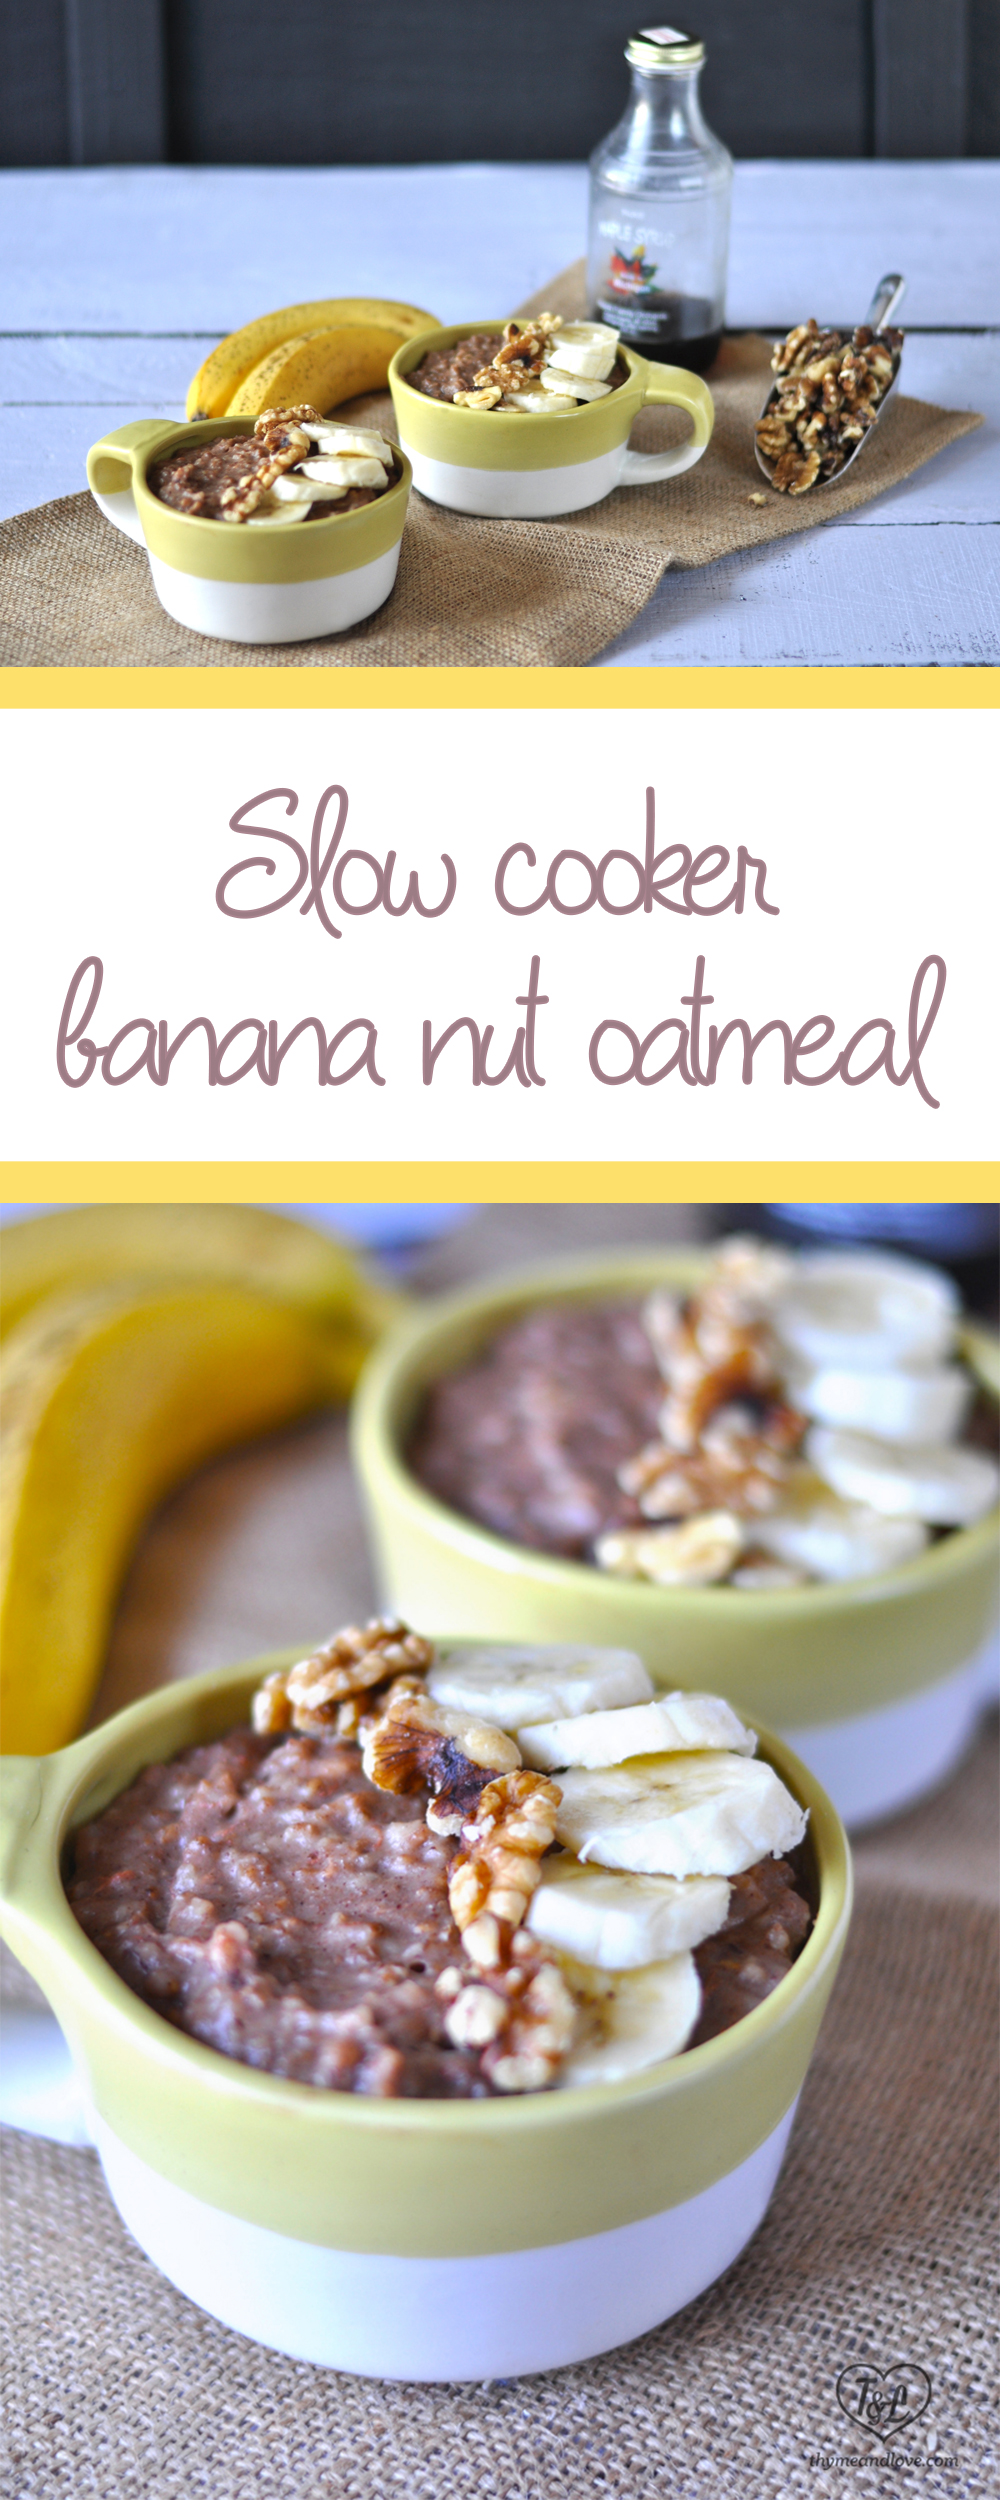 Slow Cooker Banana Oatmeal that taste just like banana bread, but much healthier! Perfect for a make ahead breakfast !#vegan #breakfast #oatmeal #slowcooker